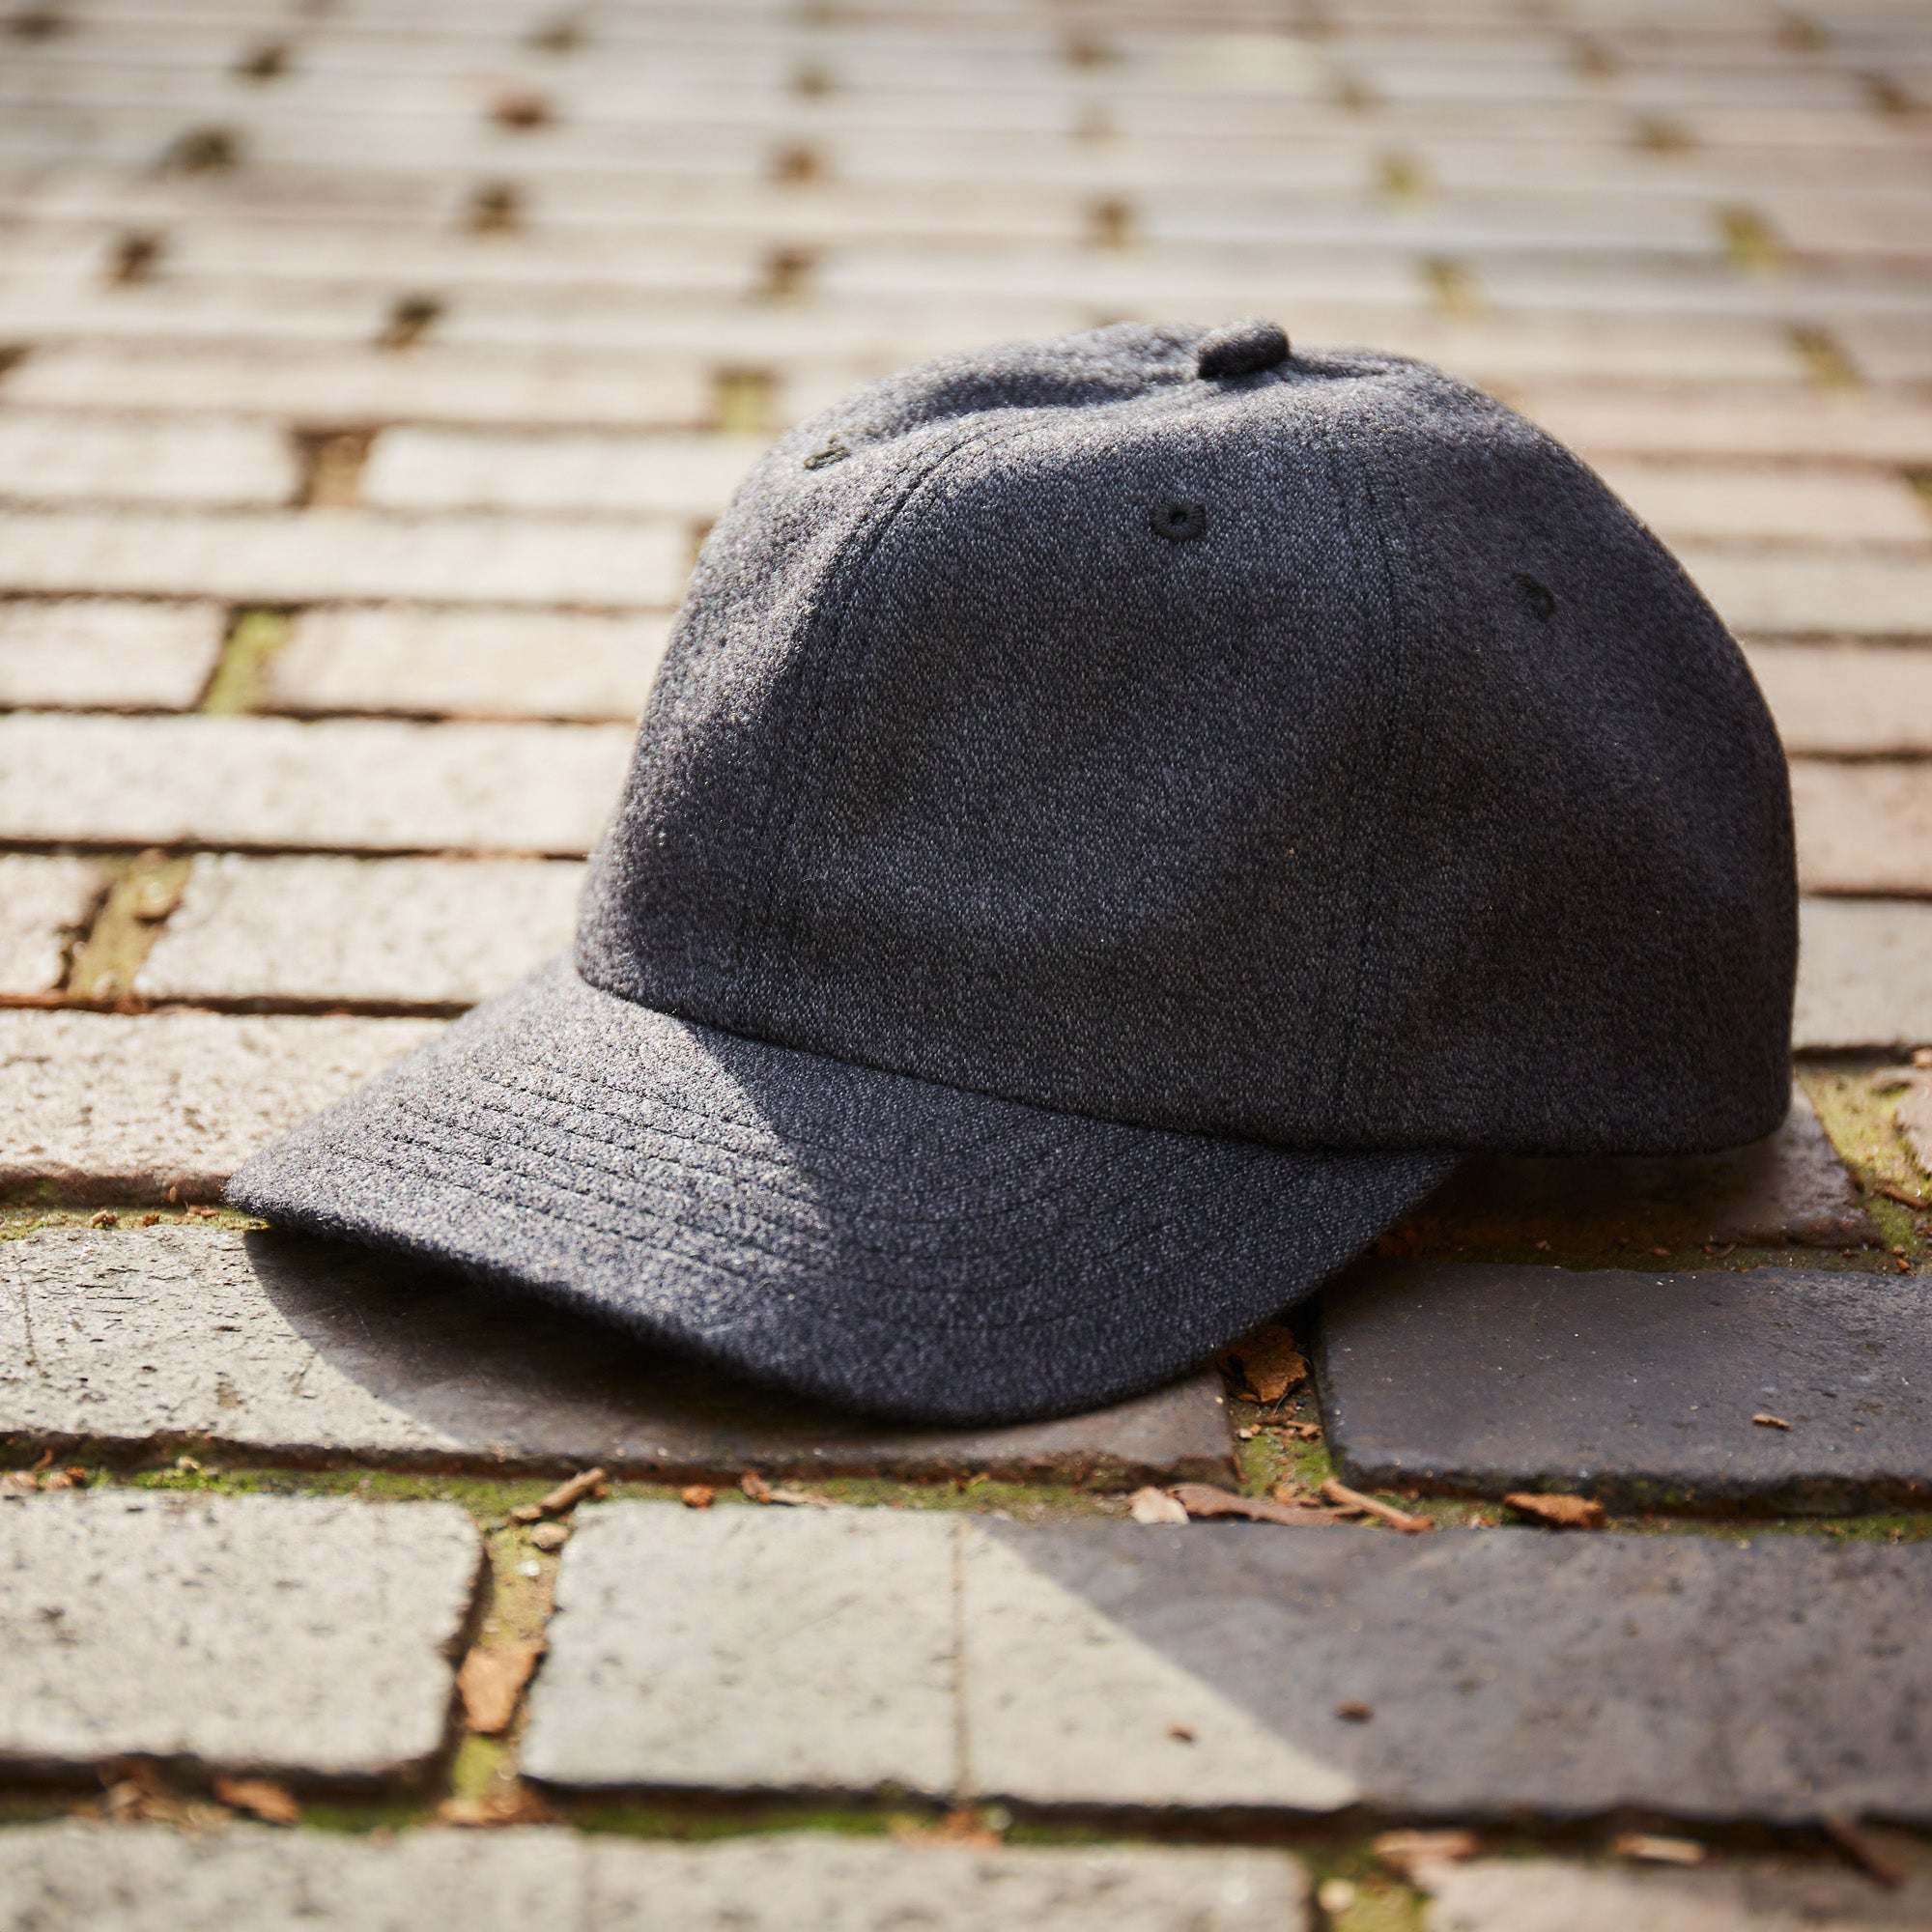 VIBERG X Division Road Covert Cloth Cap